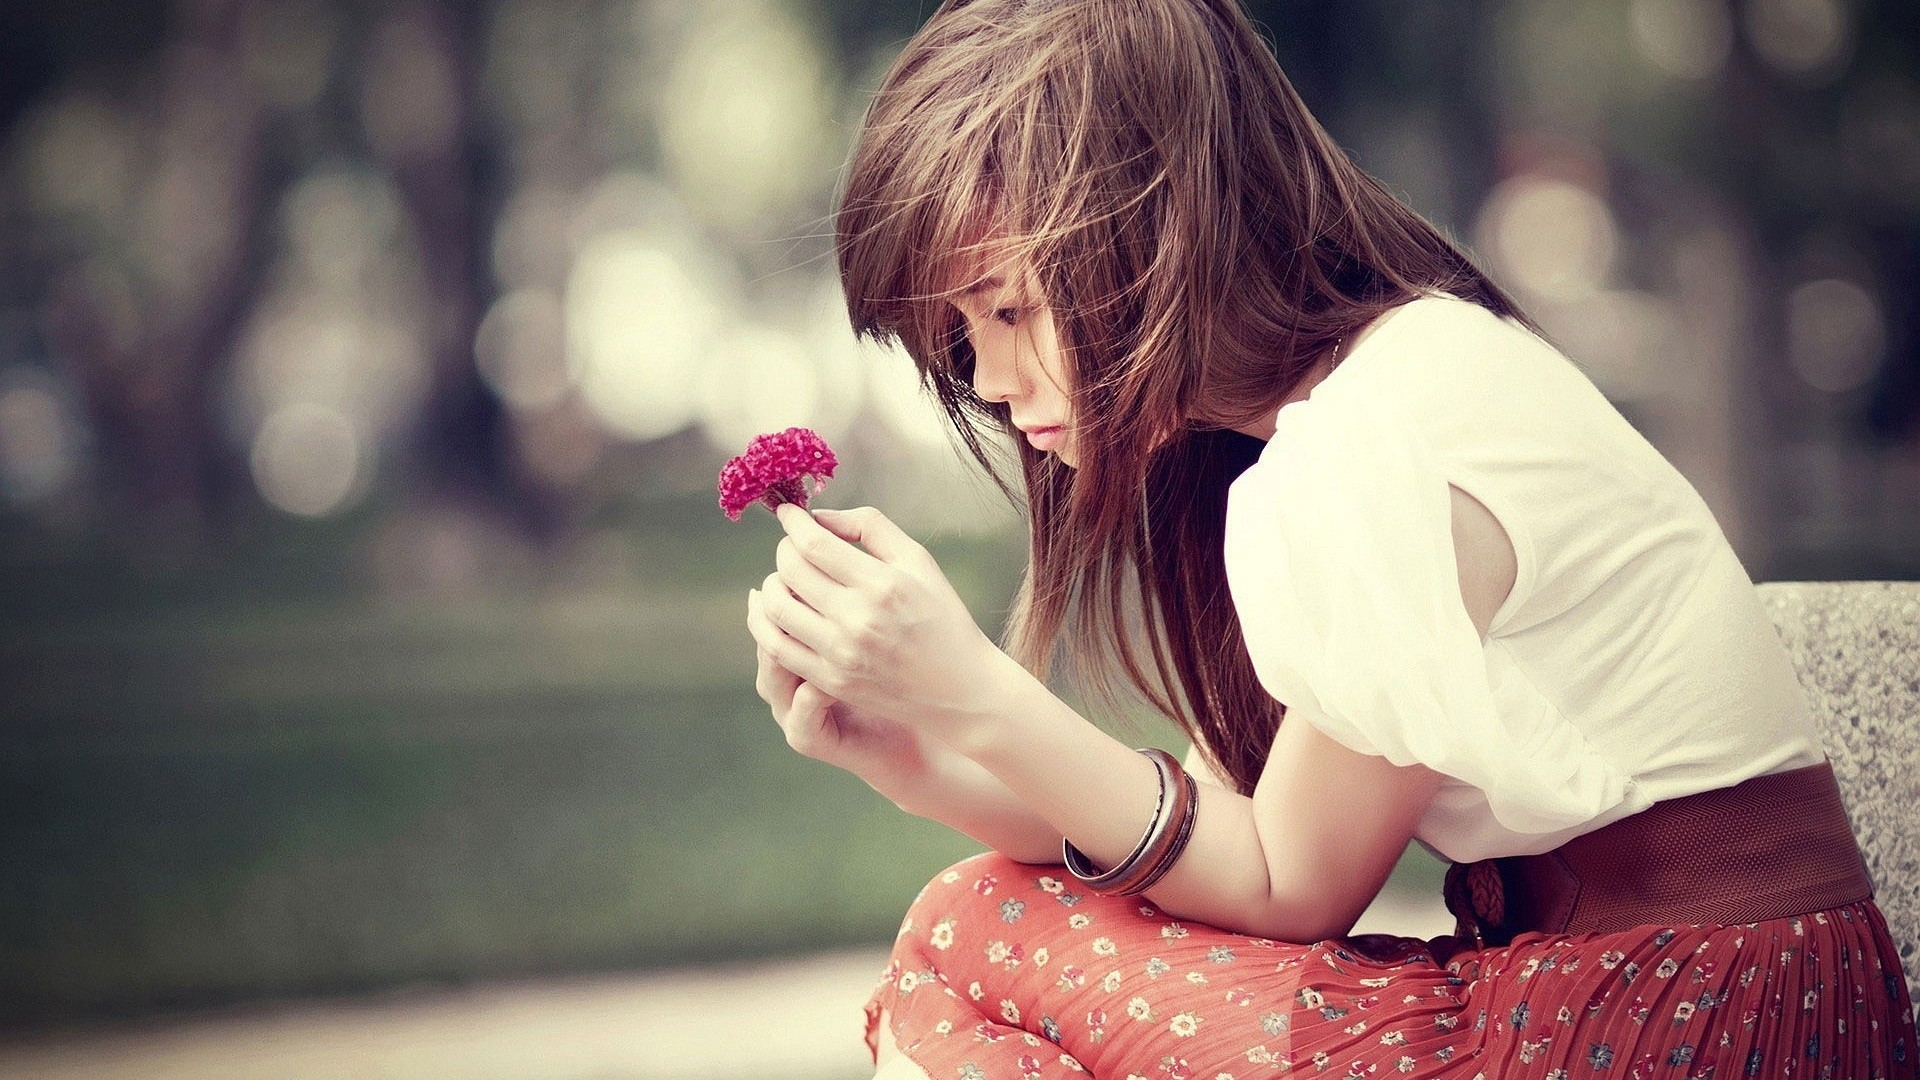 Sad Girl Wallpapers 72 Pictures